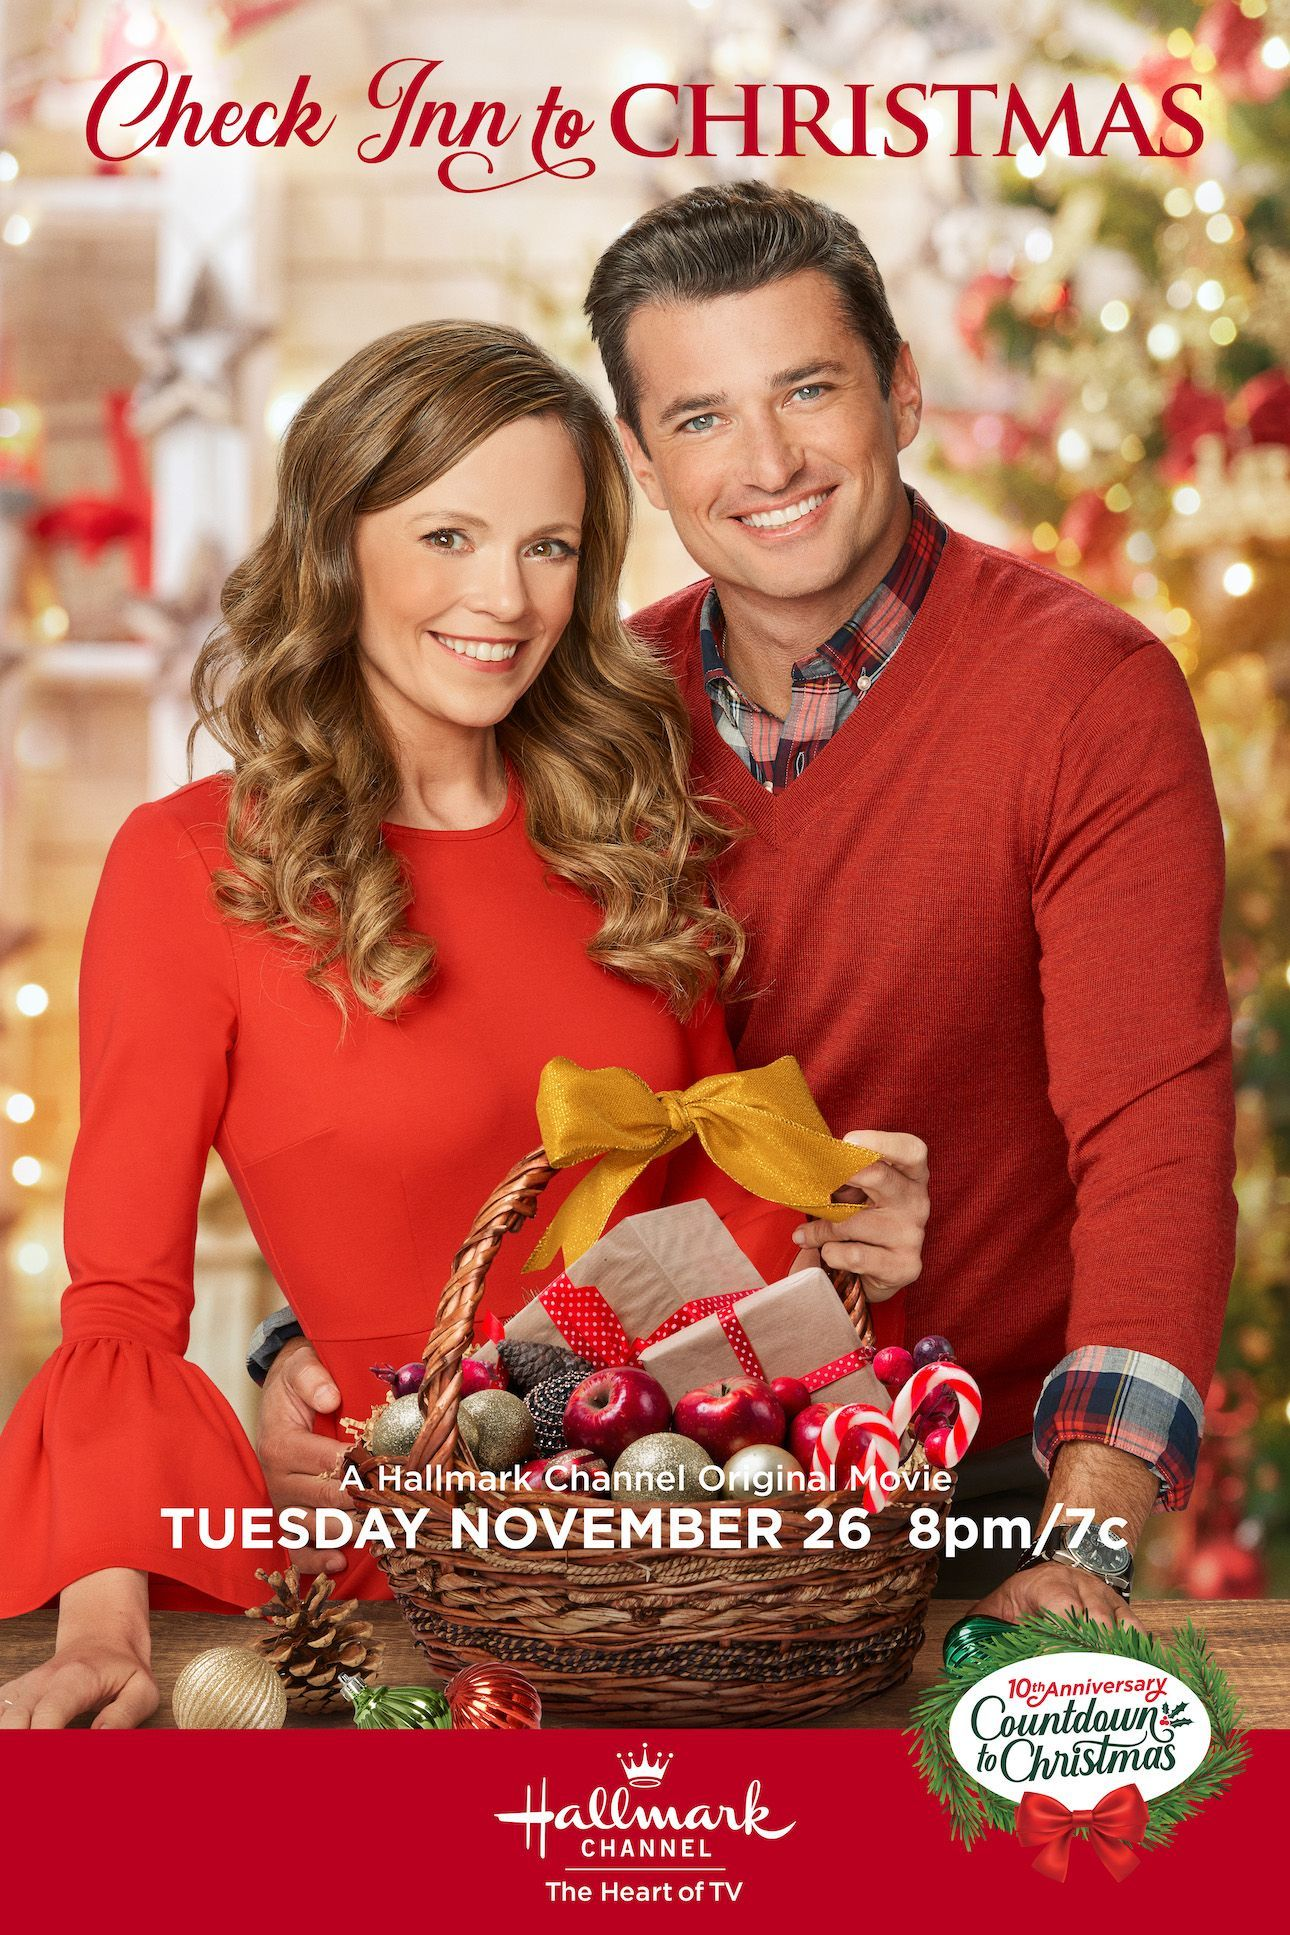 Check Inn To Christmas Stars Rachel Boston And Wes Brown As Rival Innkeepers Who May Find Hallmark Christmas Movies Christmas Movies Family Christmas Movies